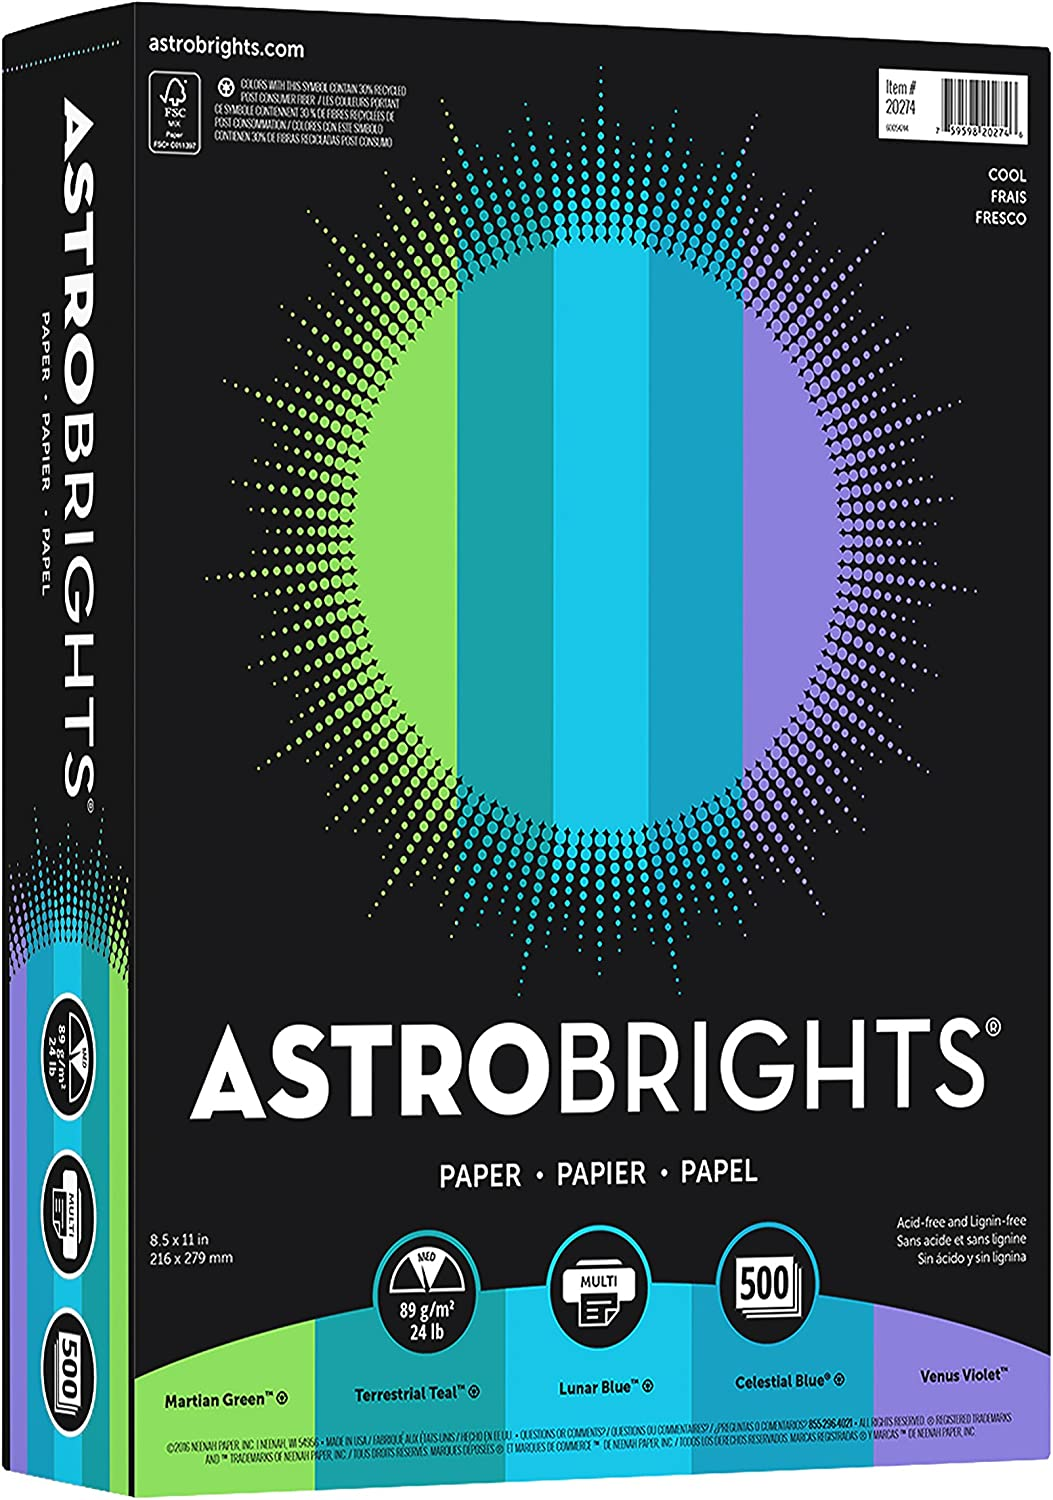 """Astrobrights Color Paper, 8.5"""" x 11"""", 24 lb/ 89 gsm, """"Cool"""" 5-Color Assortment, 500 Sheets(20274) : Printer And Copier Paper : Office Products"""